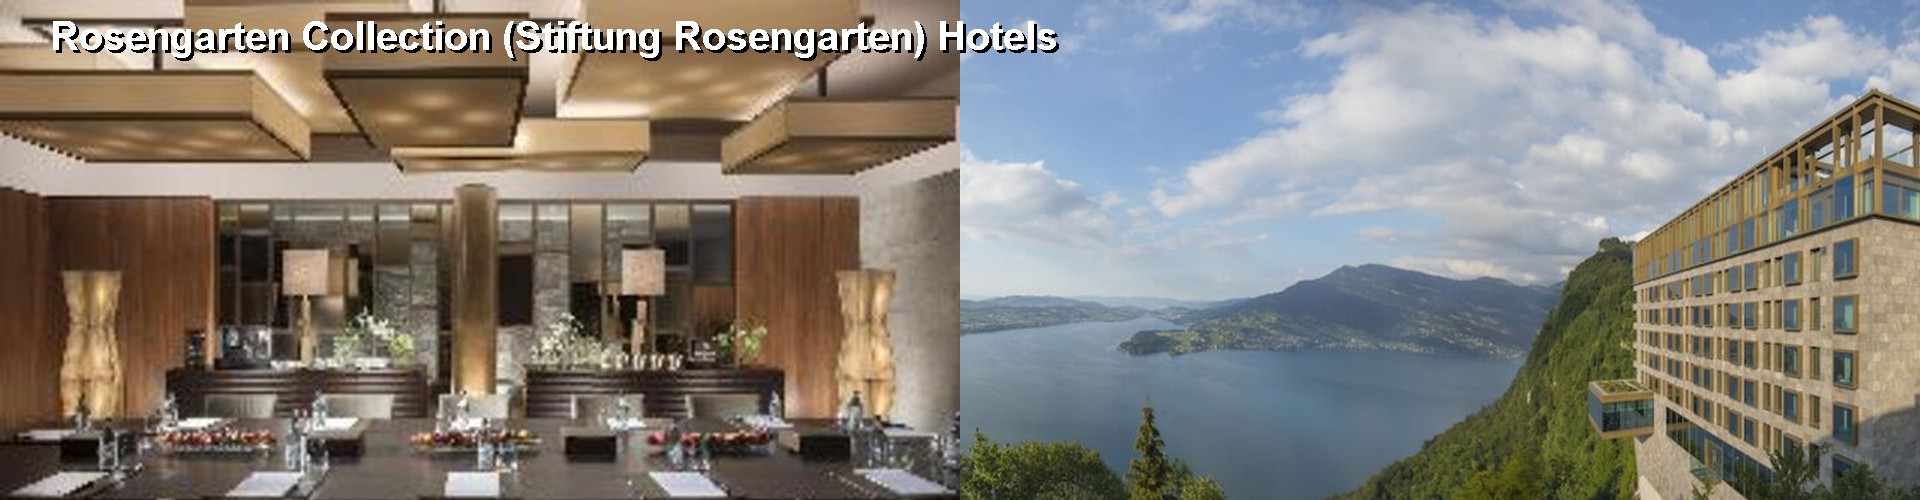 5 Best Hotels near Rosengarten Collection (Stiftung Rosengarten)